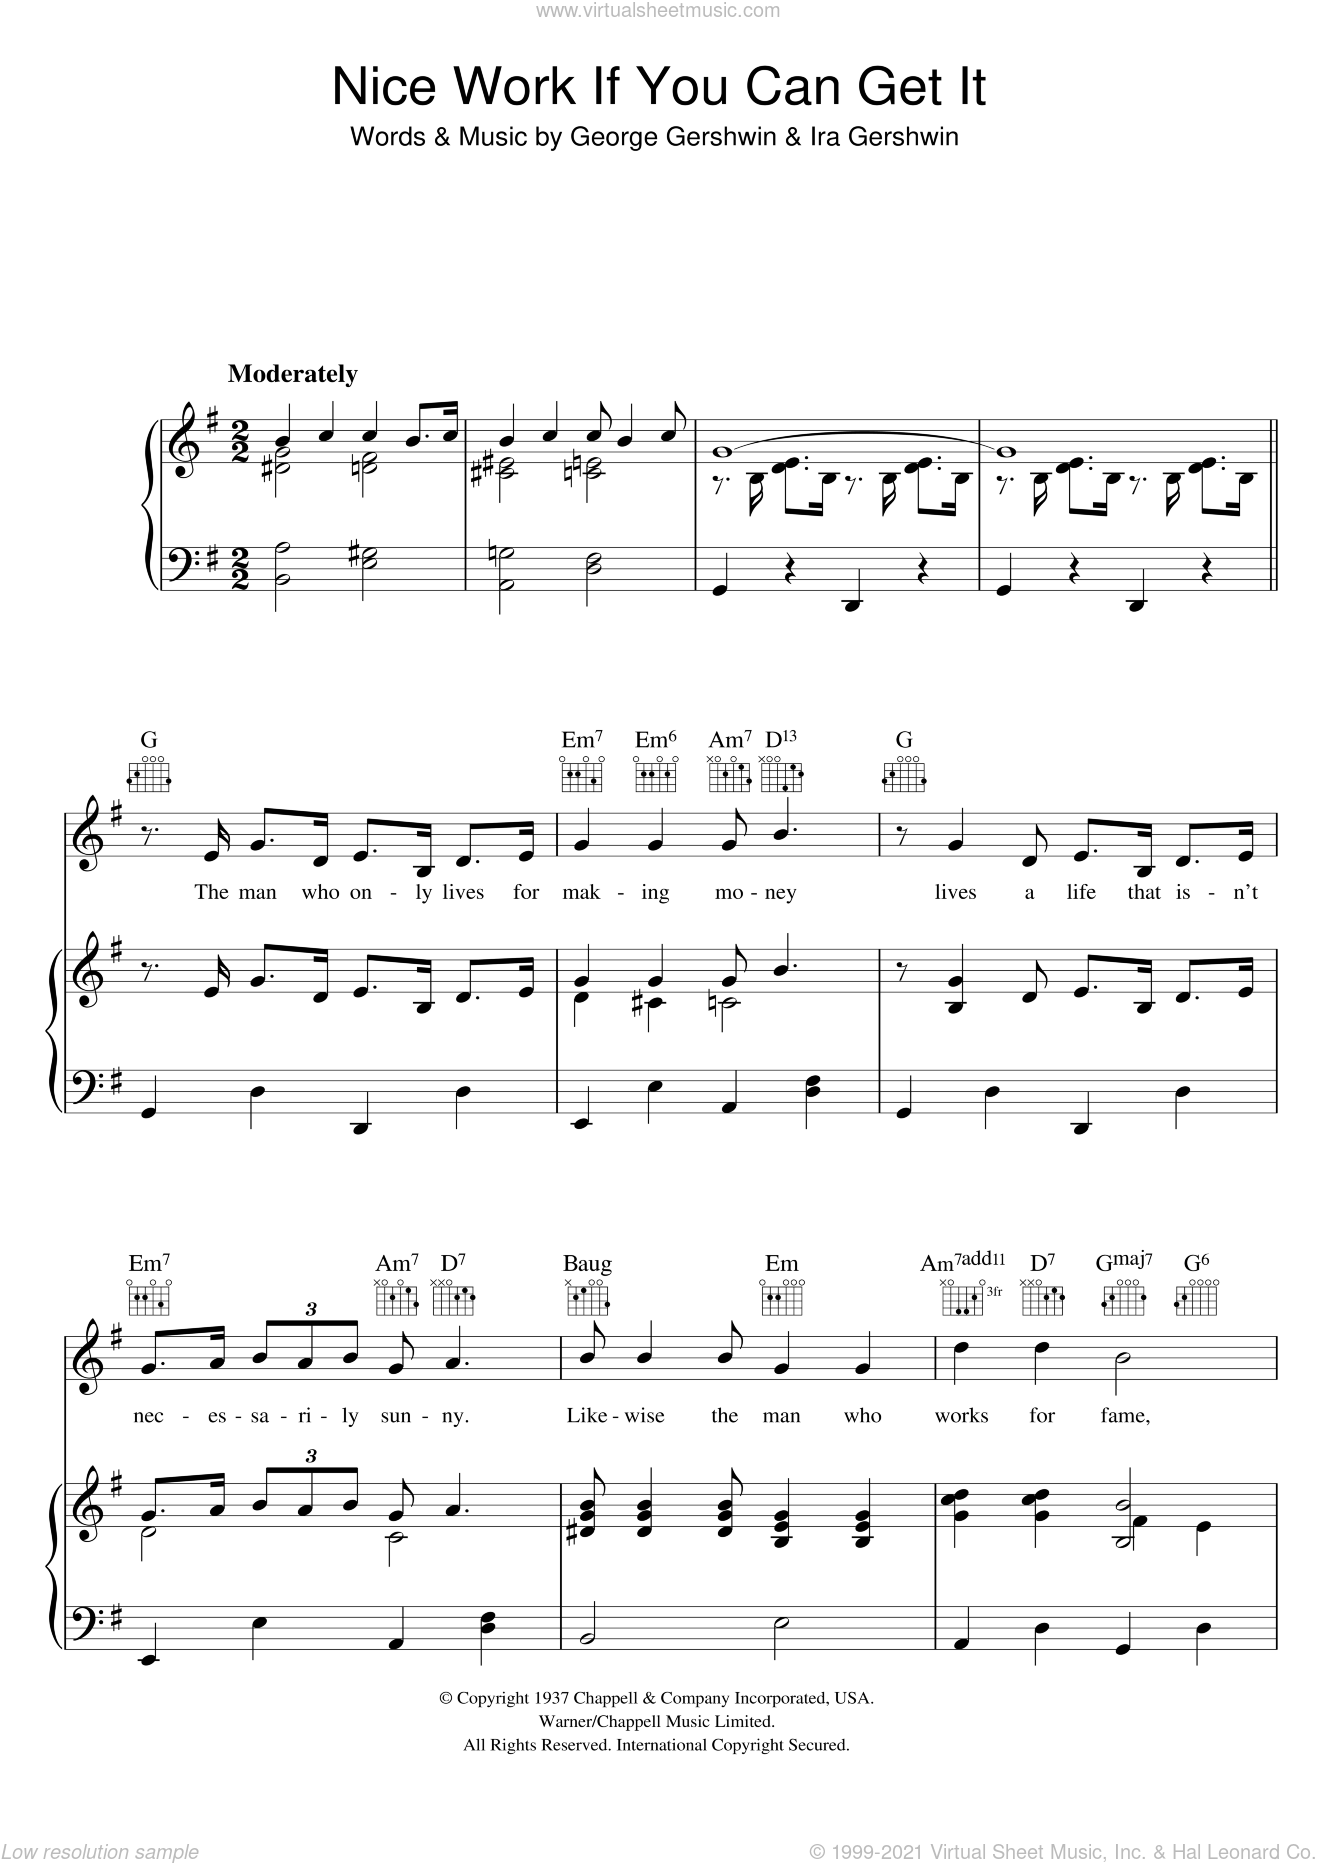 Nice Work If You Can Get It sheet music for voice, piano or guitar by George Gershwin and Ira Gershwin, intermediate skill level